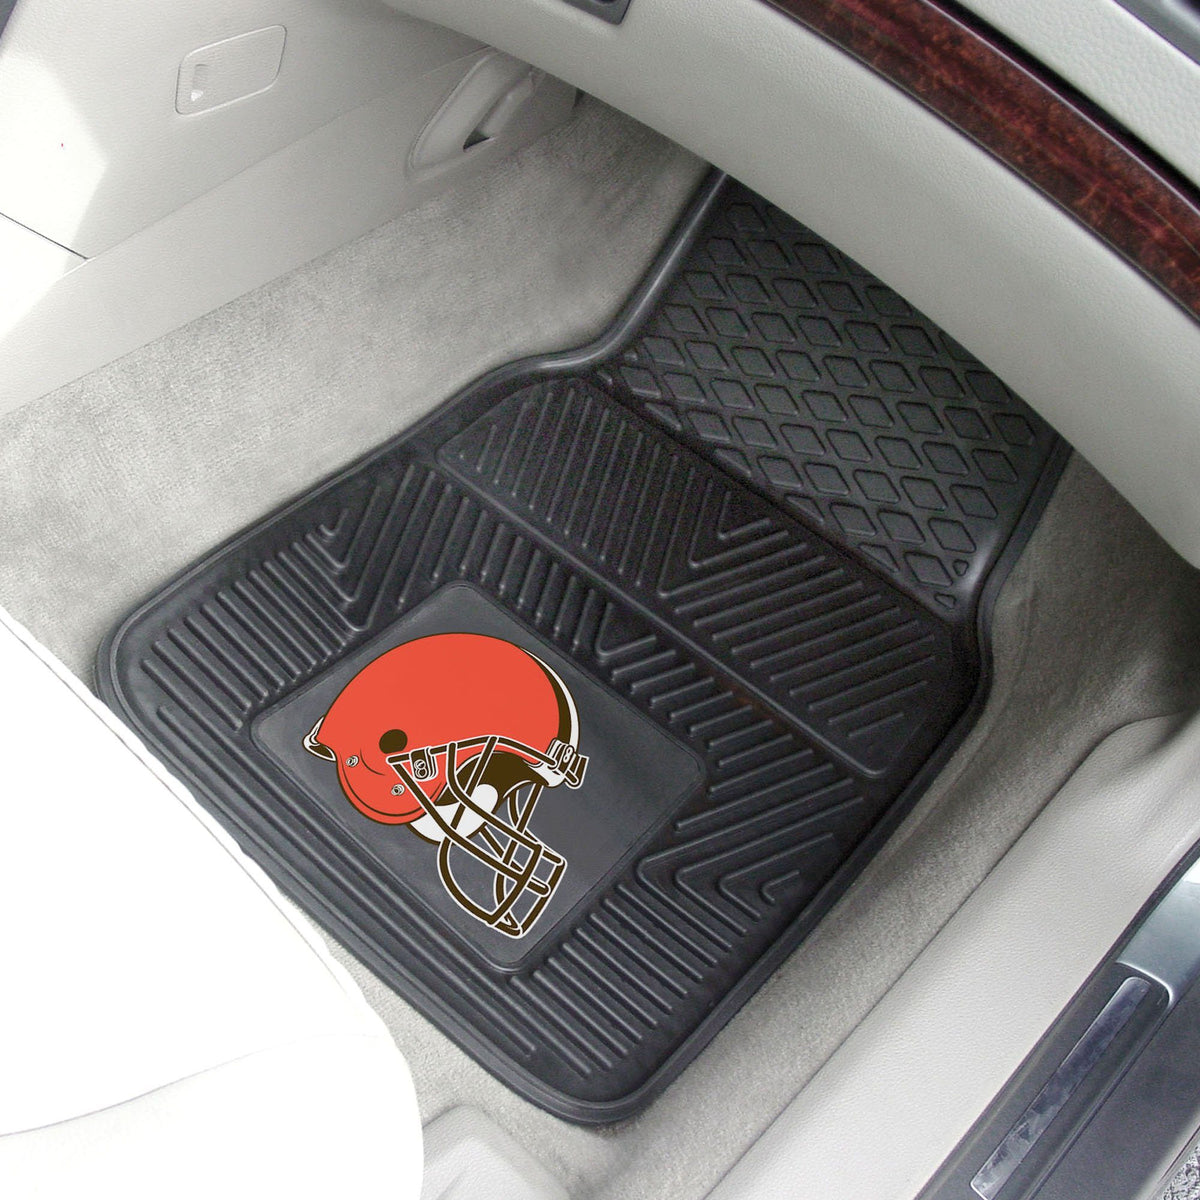 NFL - 2-pc Vinyl Car Mat Set NFL Mats, Front Car Mats, 2-pc Vinyl Car Mat Set, NFL, Auto Fan Mats Cleveland Browns